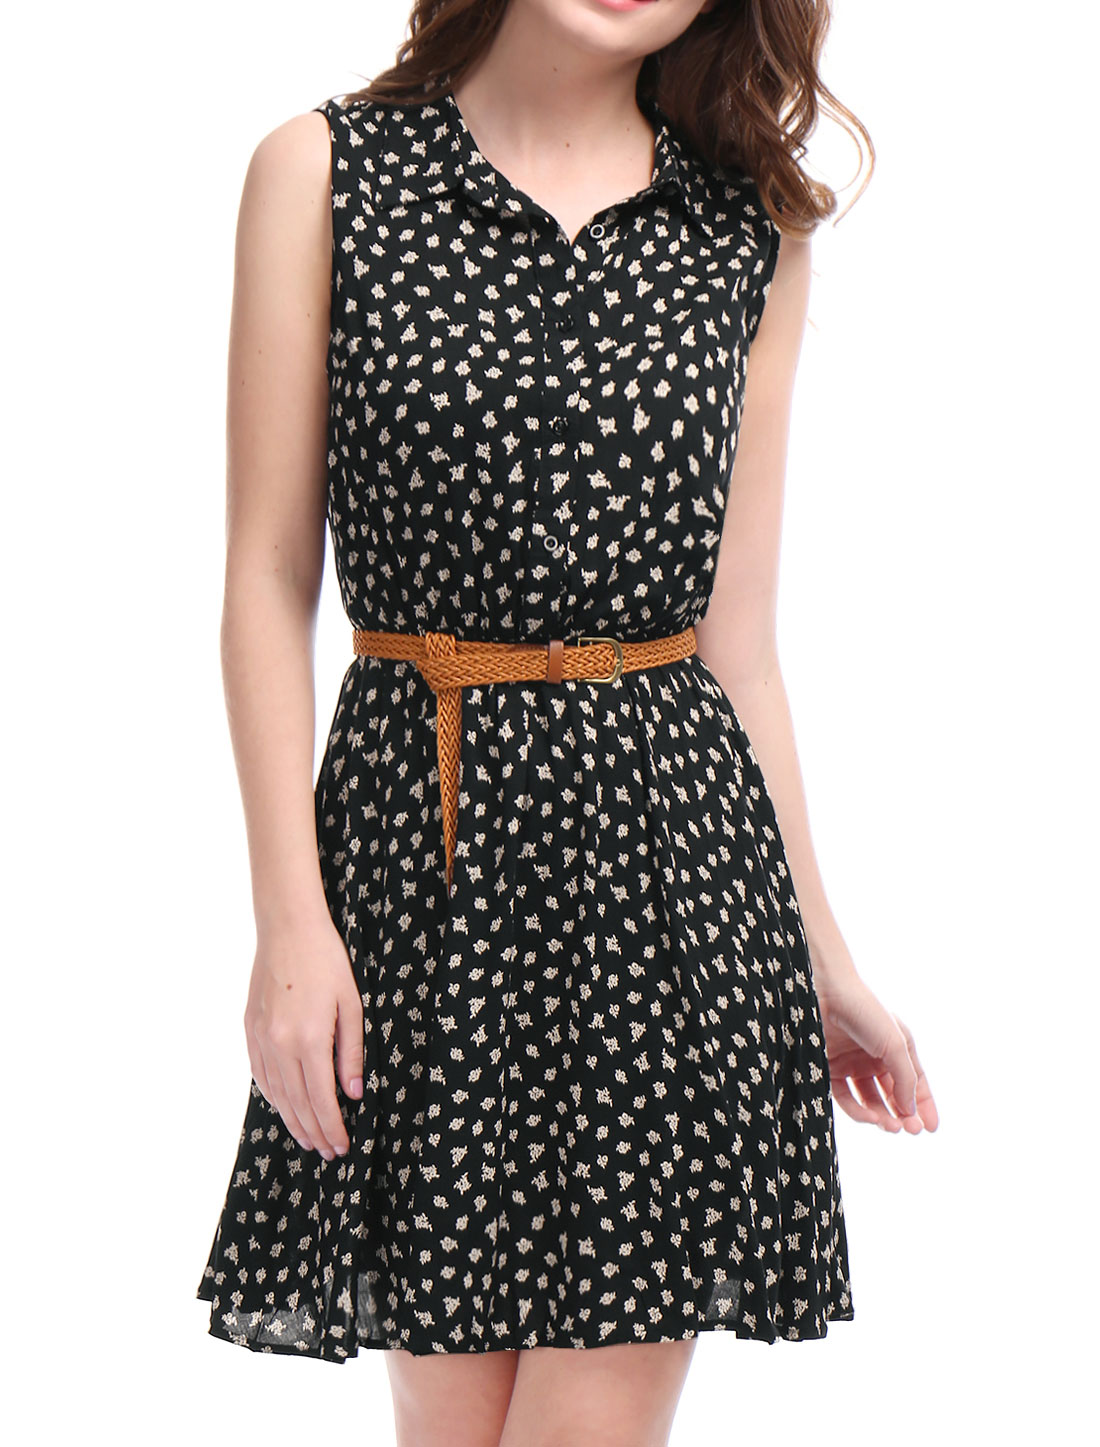 Women Daisy Print Point Collar Sleeveless Unlined Belted Shirt Dress Black L